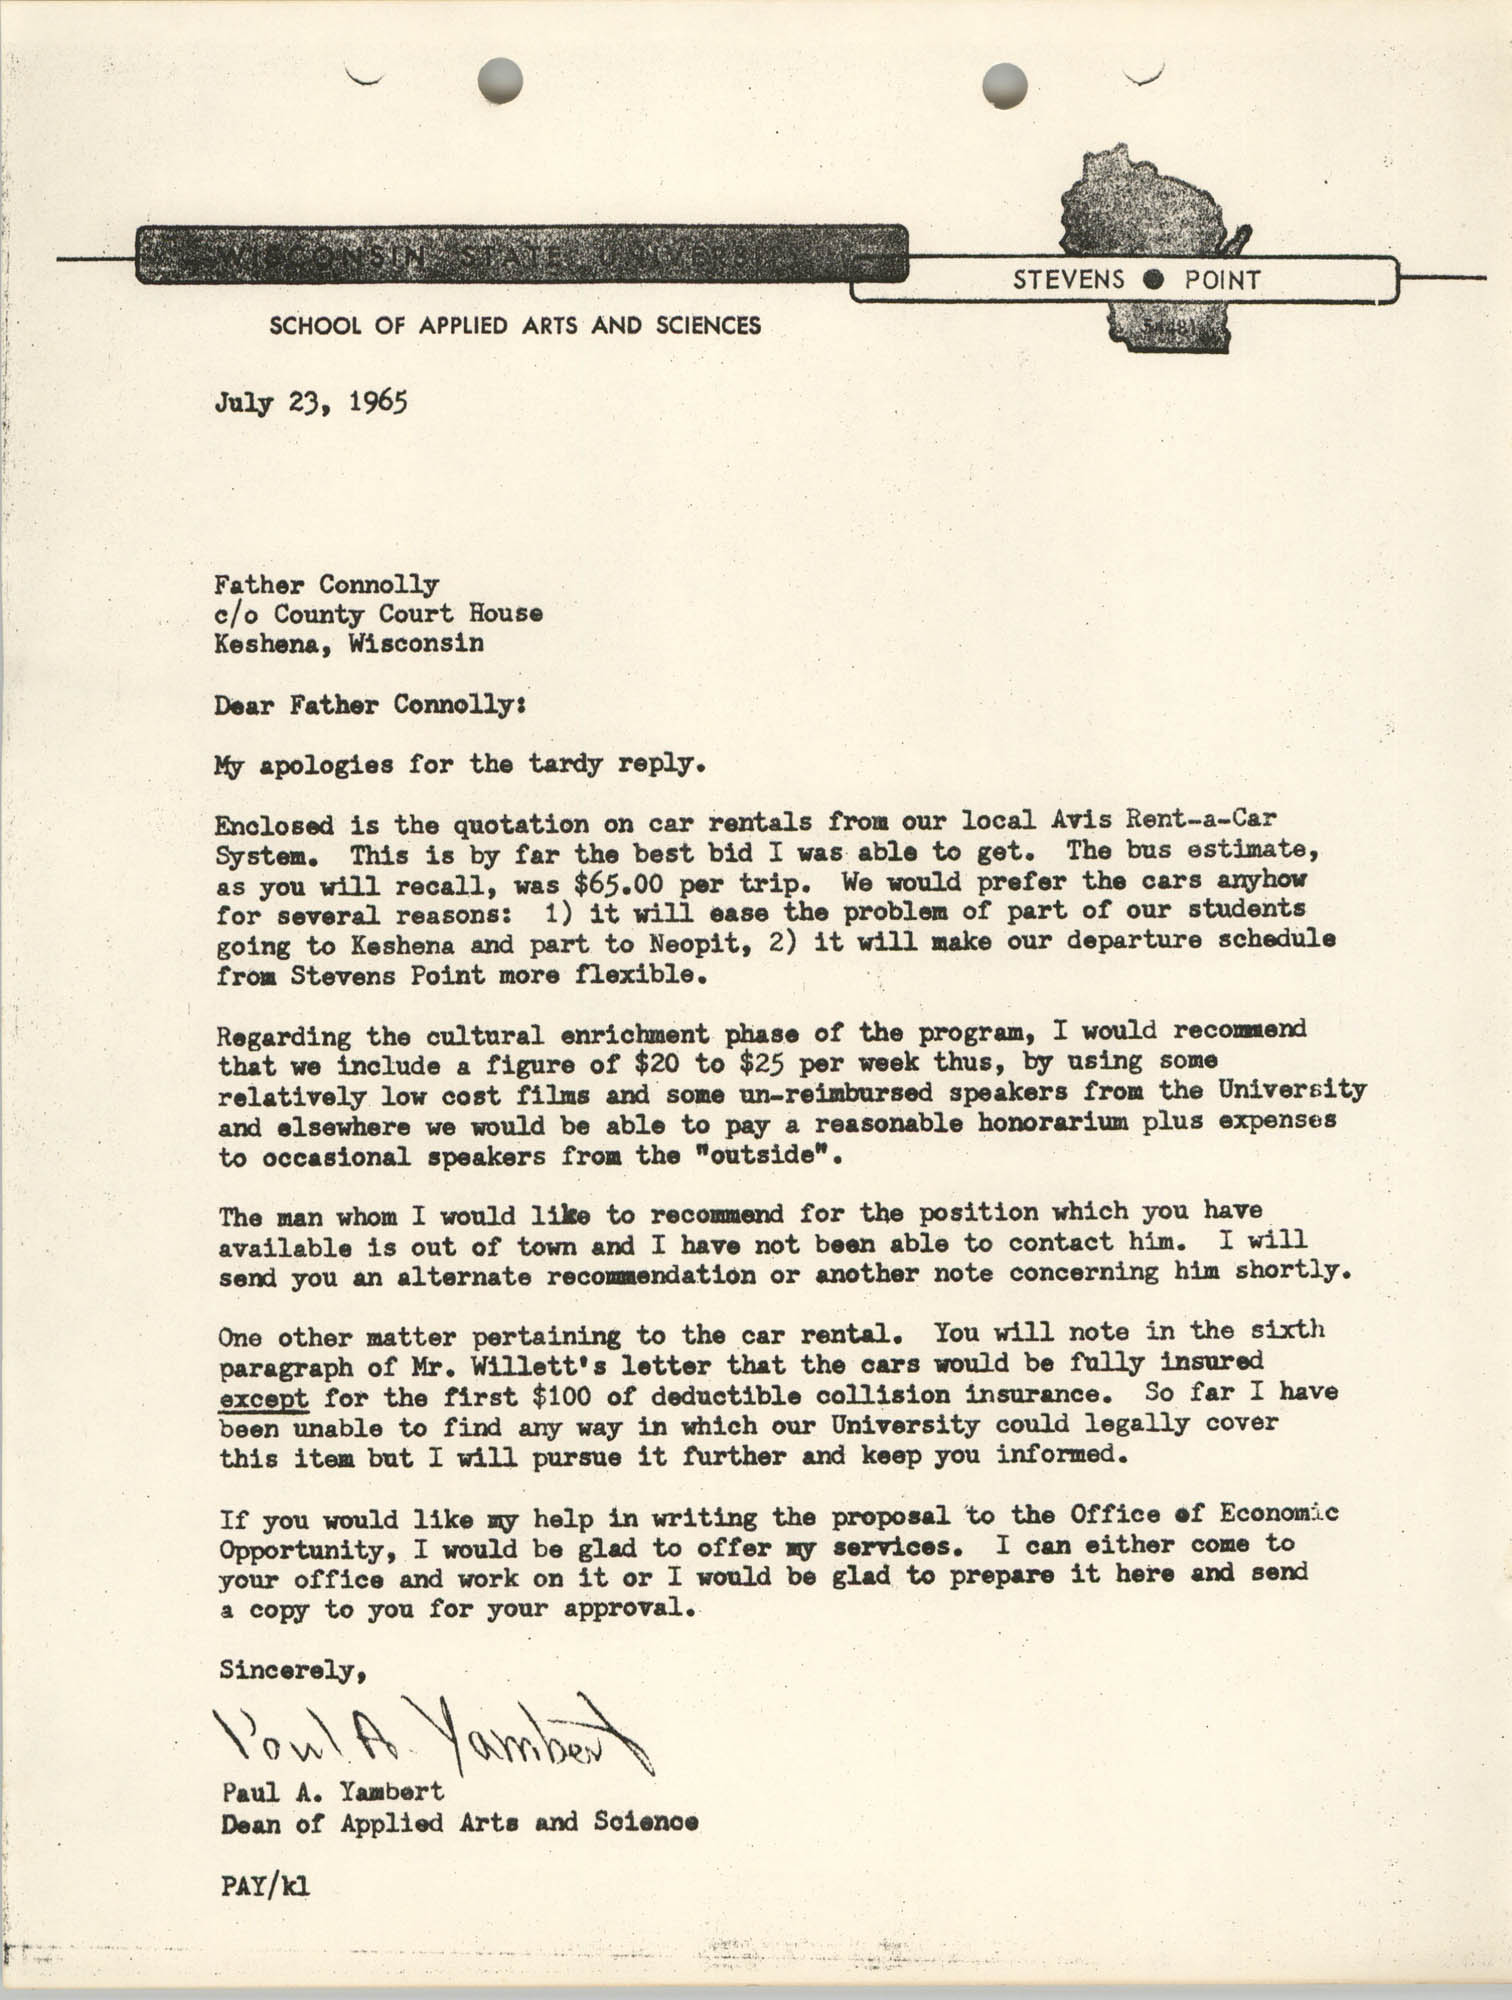 Letter from Paul A. Yambert to Father Connolly, July 23, 1965